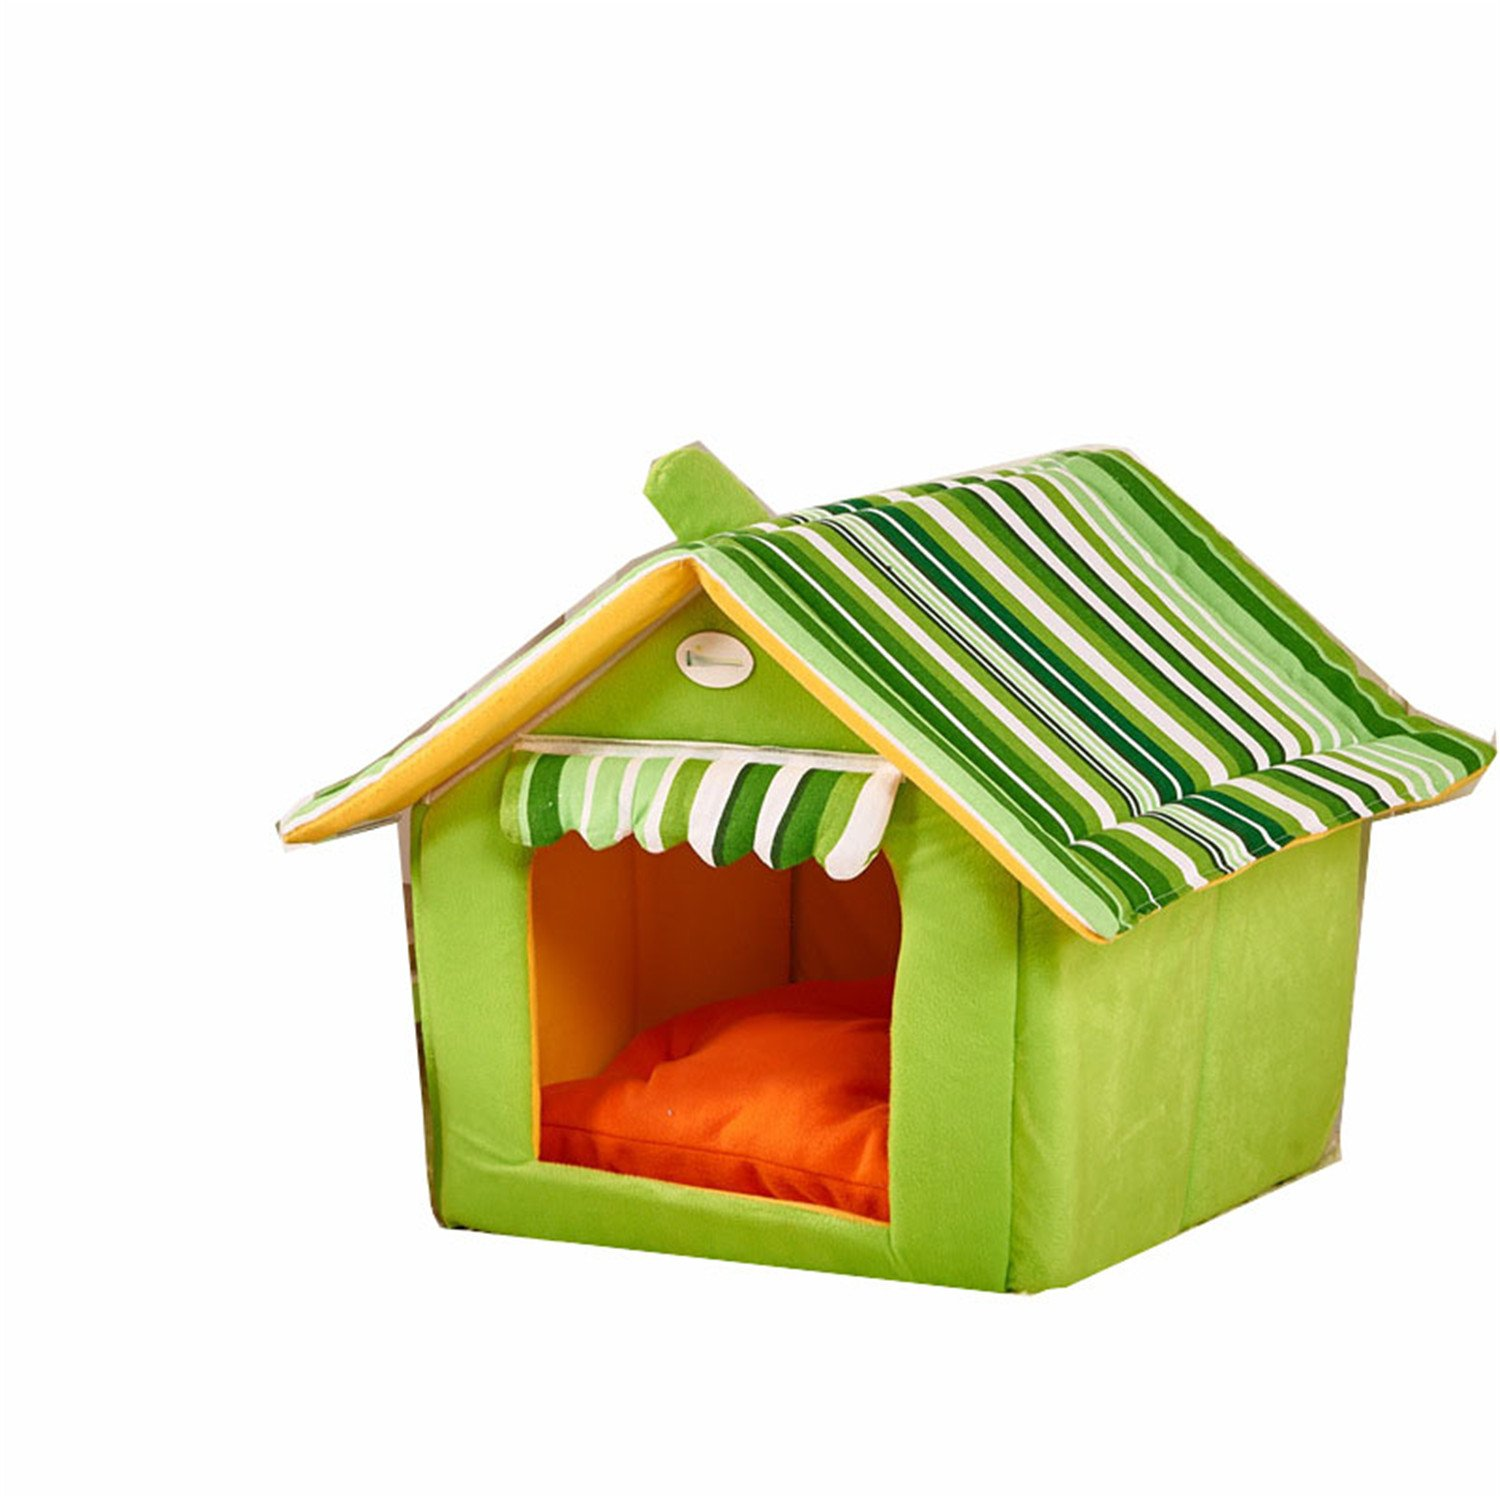 Green S Green S Leroyca Fashion Striped Removable Cover Mat Dog House Dog Beds for Small Medium Dogs House Pet Beds Green S